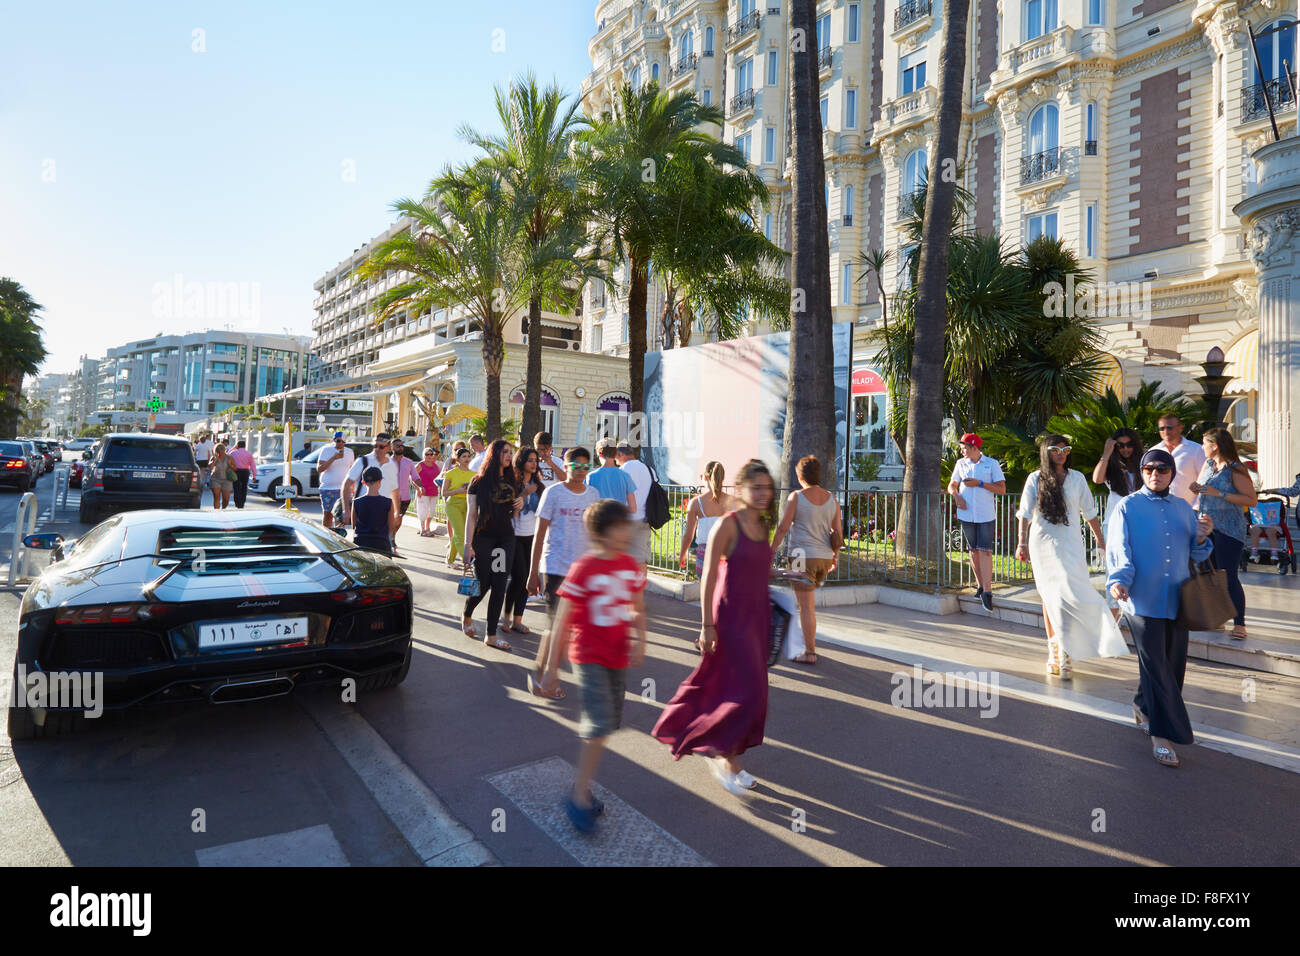 People walking in a summer afternoon along the Croisette boulevard in Cannes near Intercontinental Carlton hotel - Stock Image